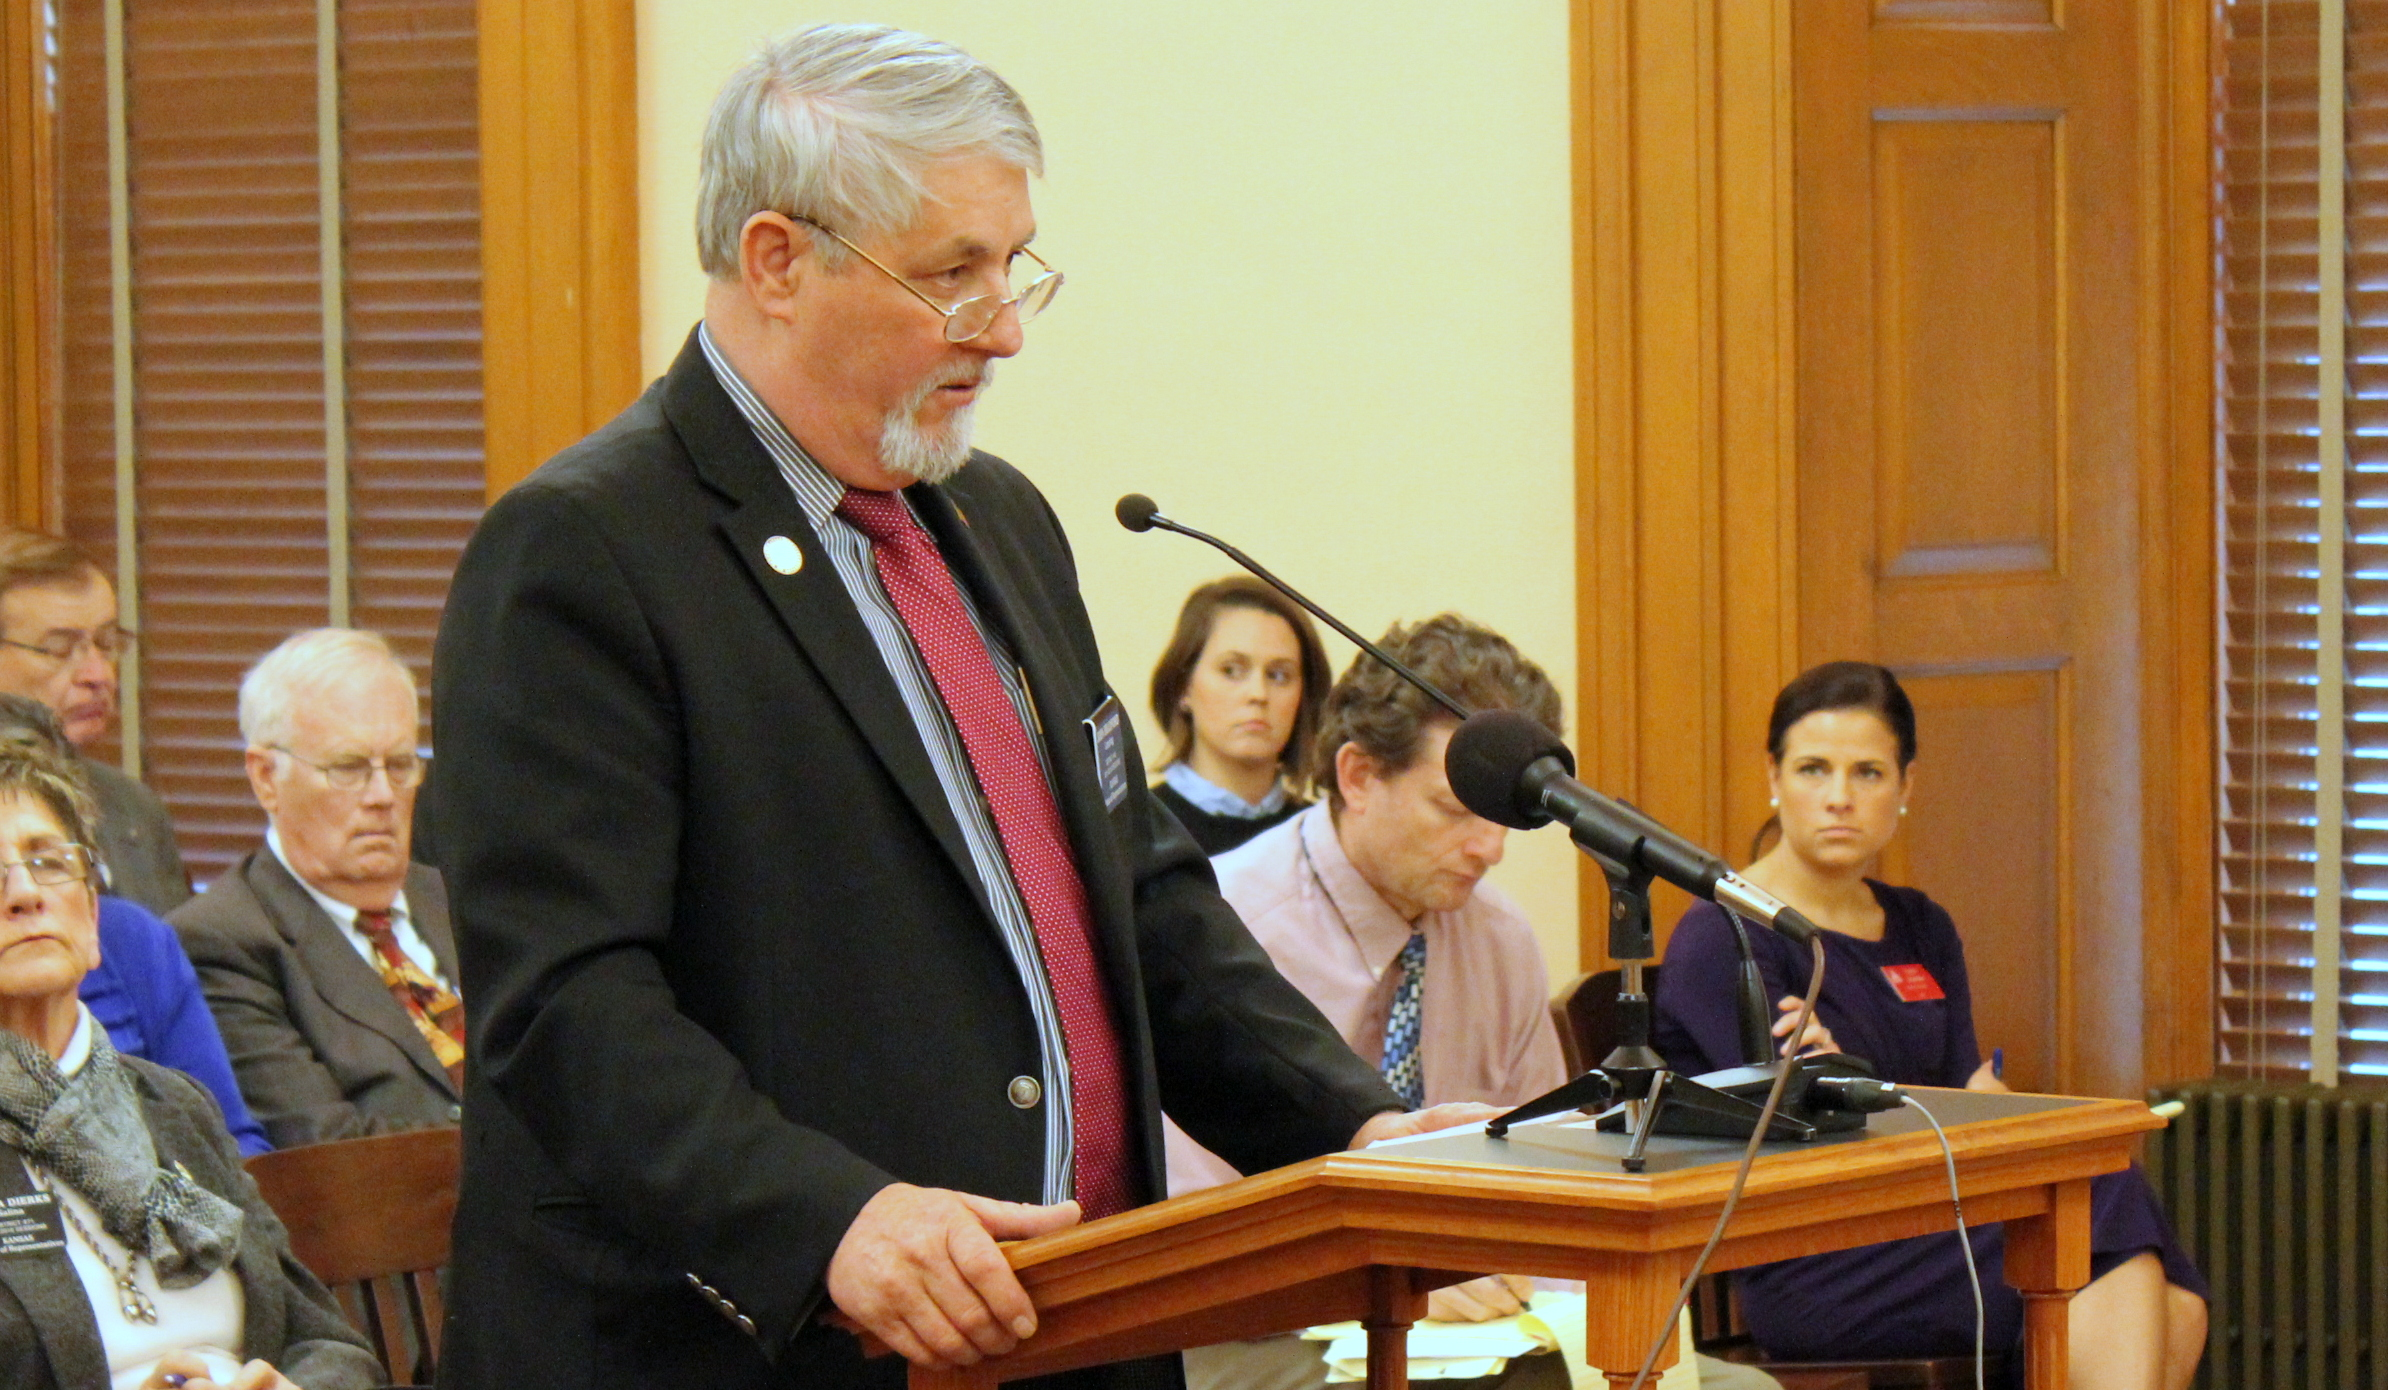 Rep. John Bradford speaking to a legislative committee. (Photo by Stephen Koranda)